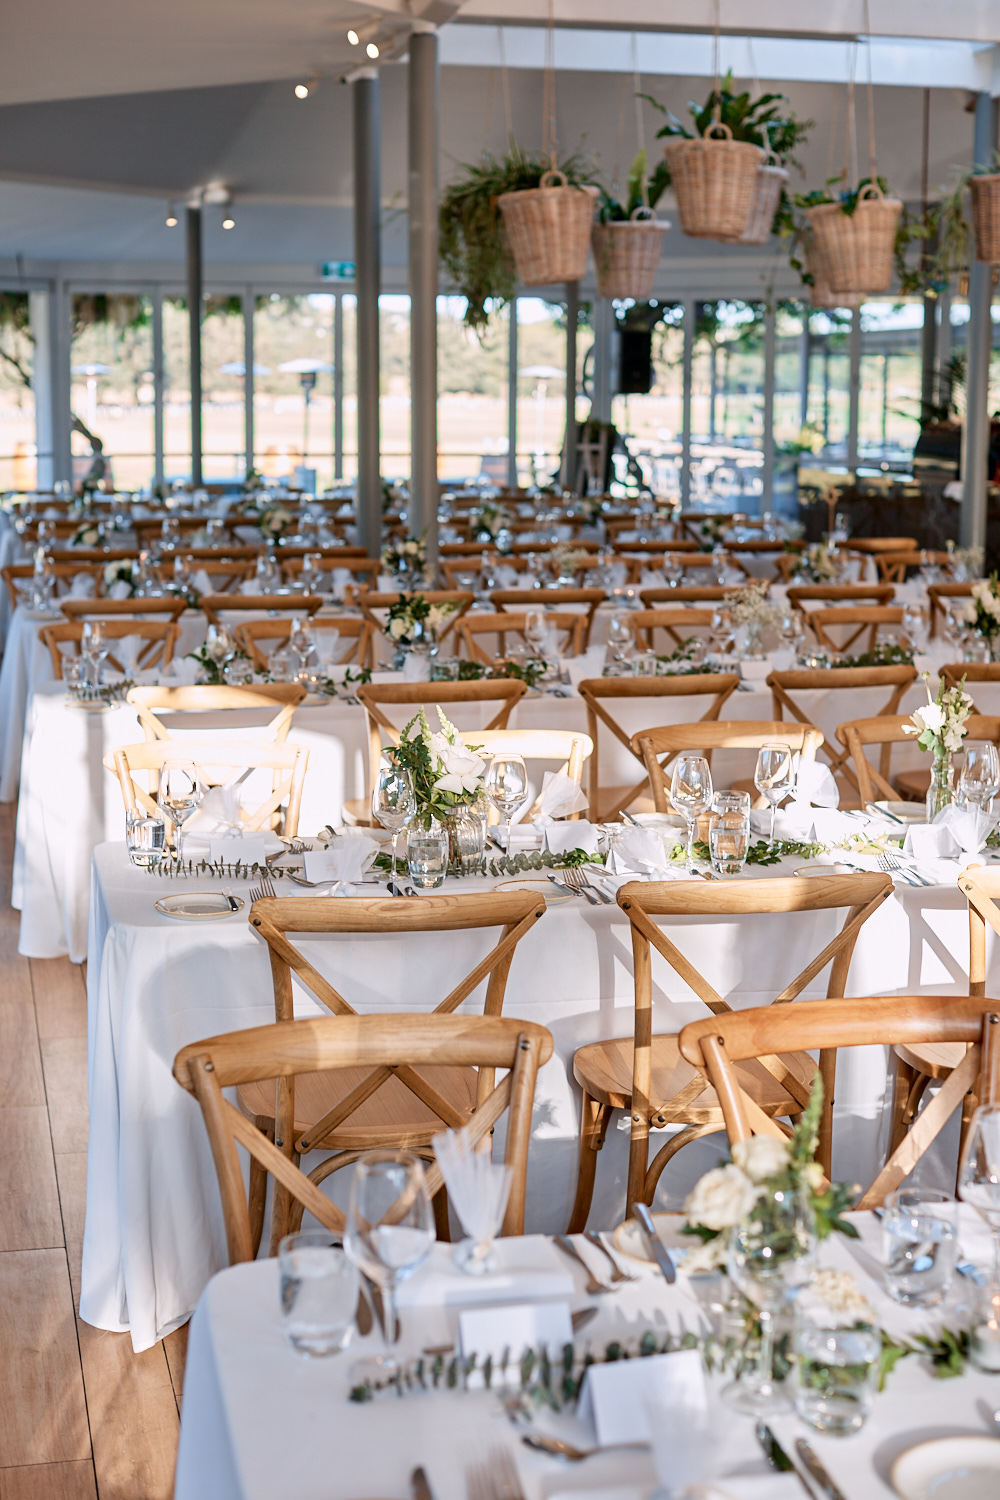 Tables and chairs at Centennial Homestead wedding